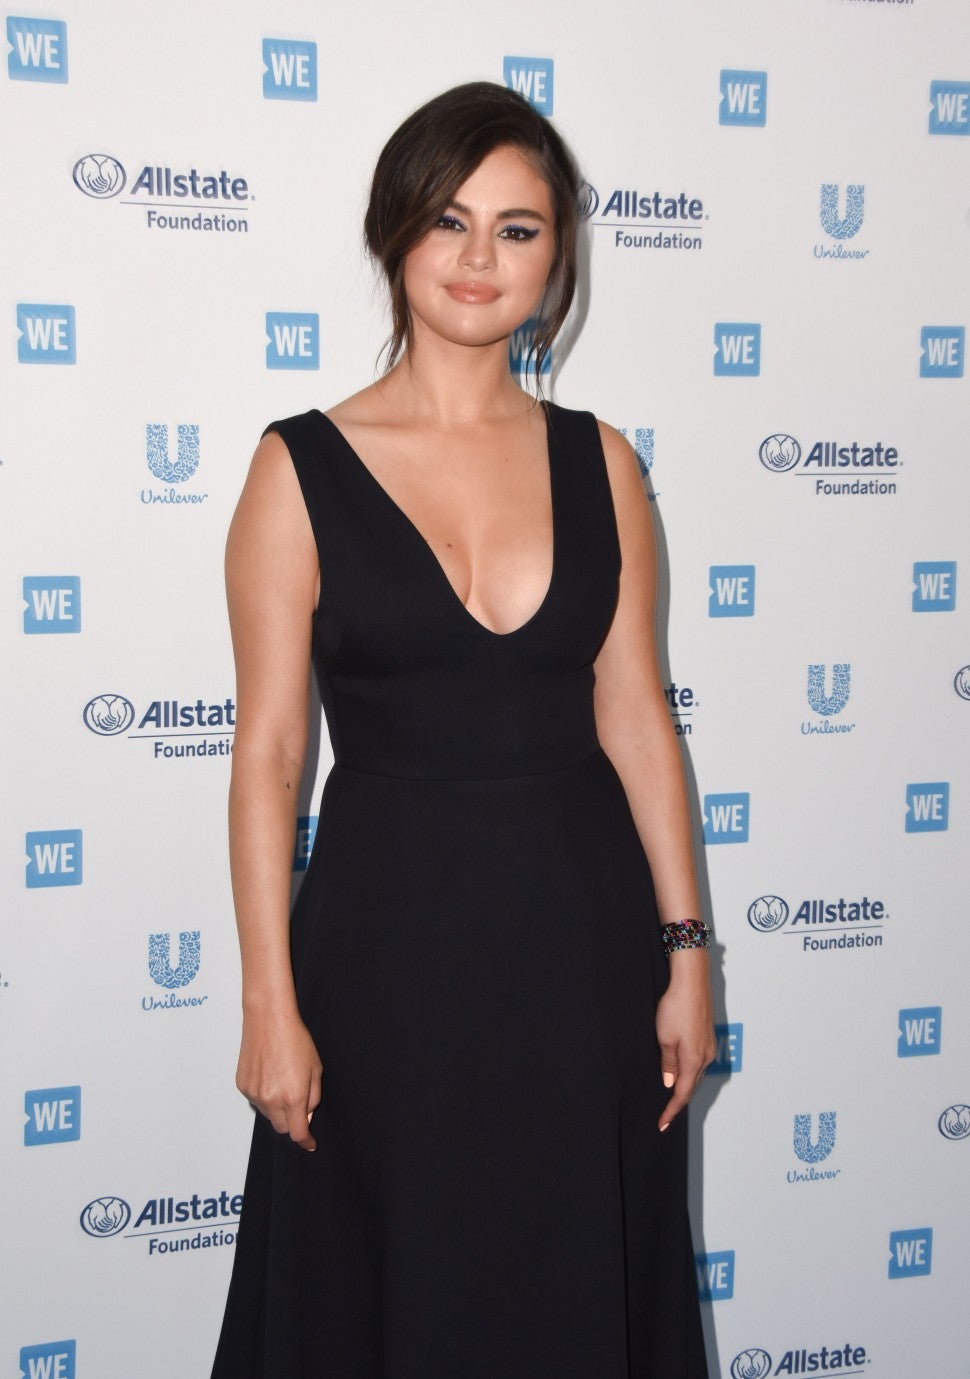 Selena Gomez at WE Day